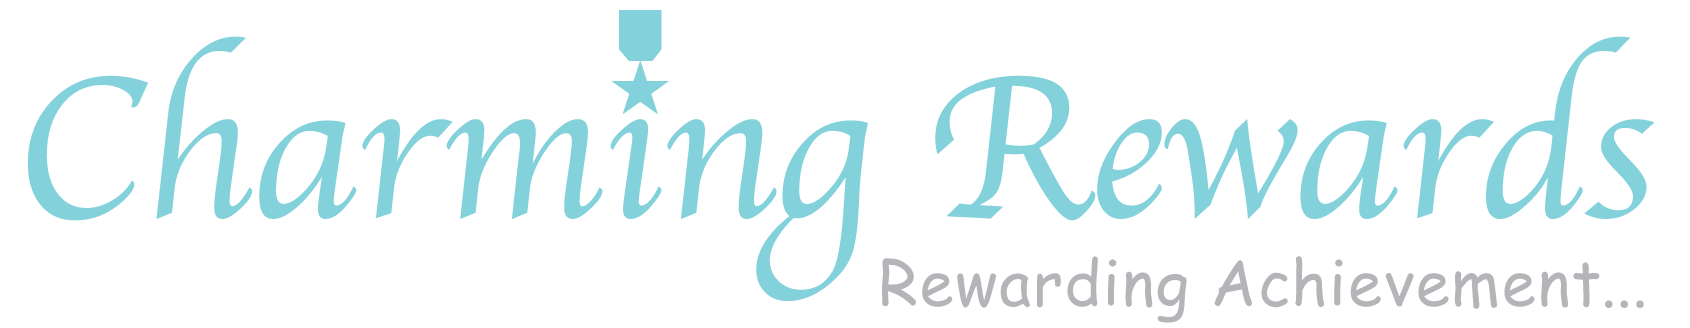 Charming Rewards logo